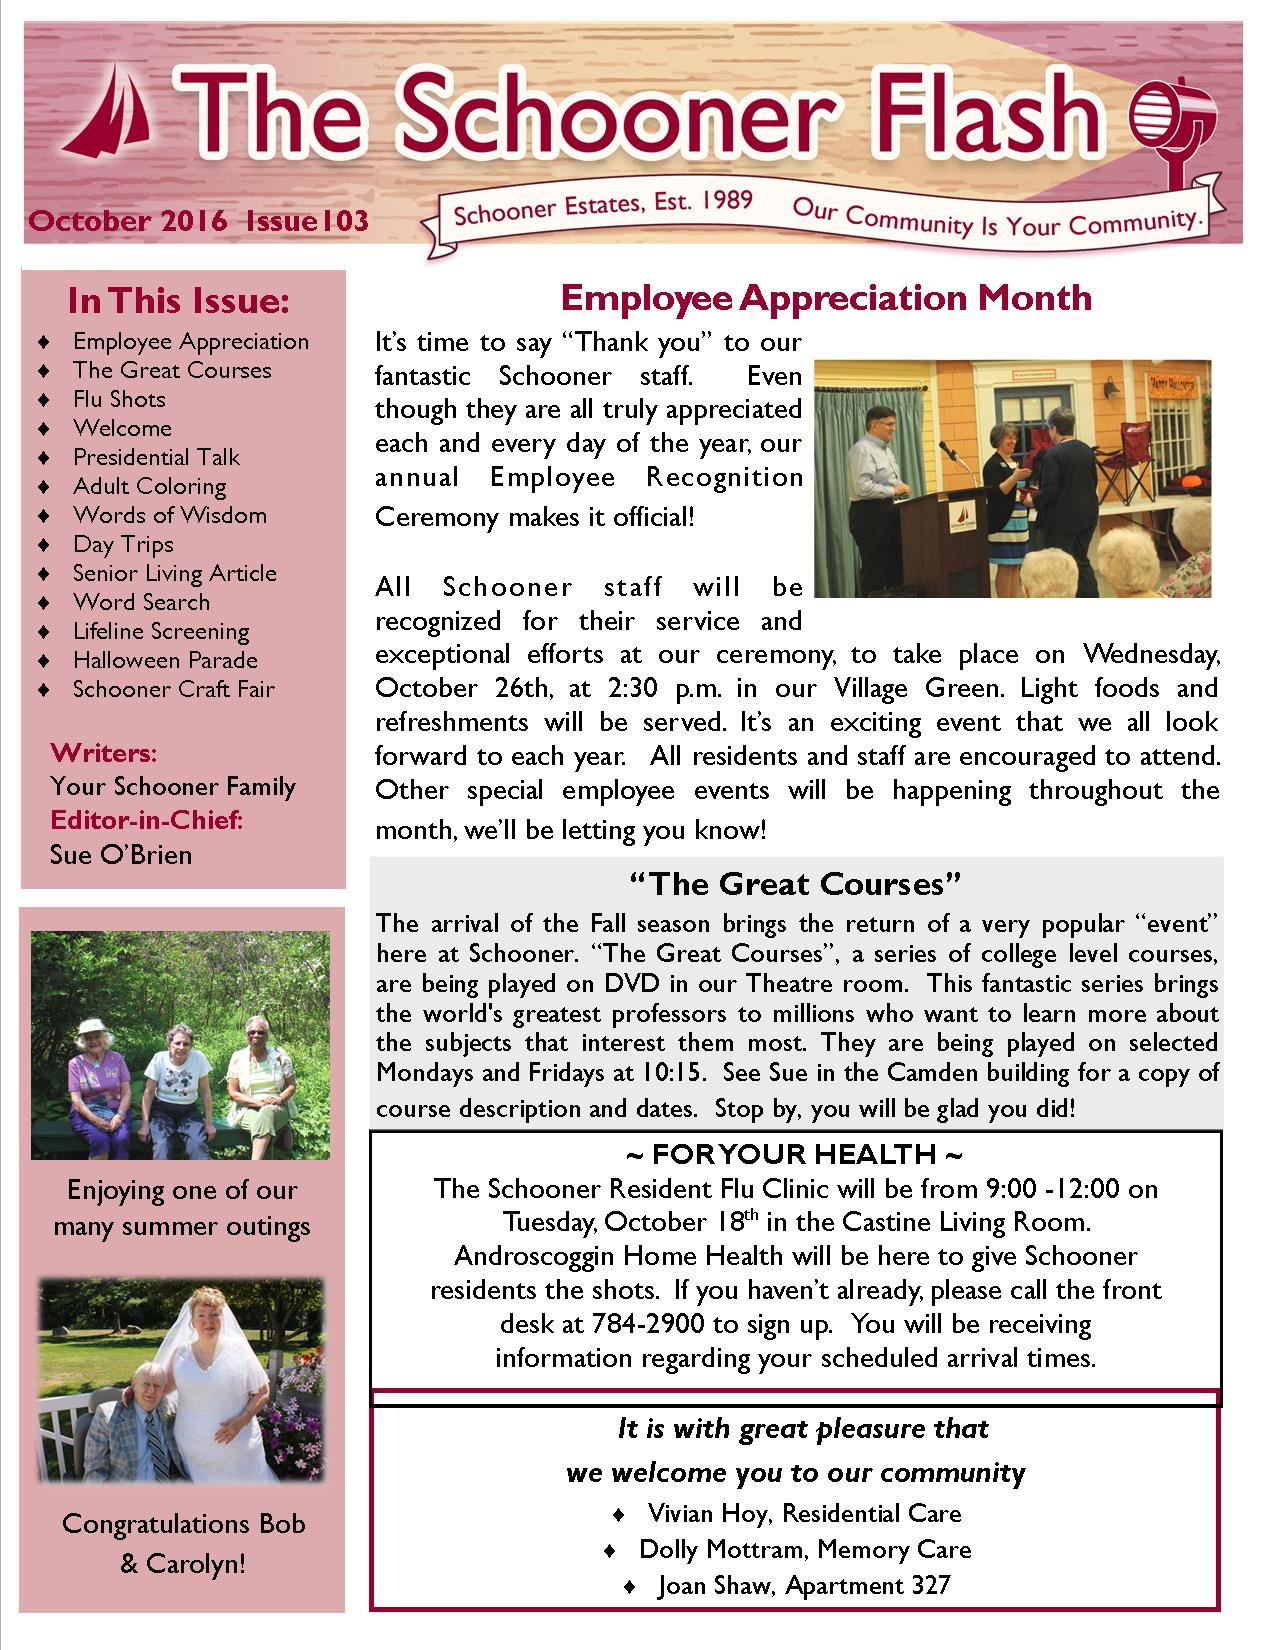 october-2015-schooner-flash-newsletter-page-1